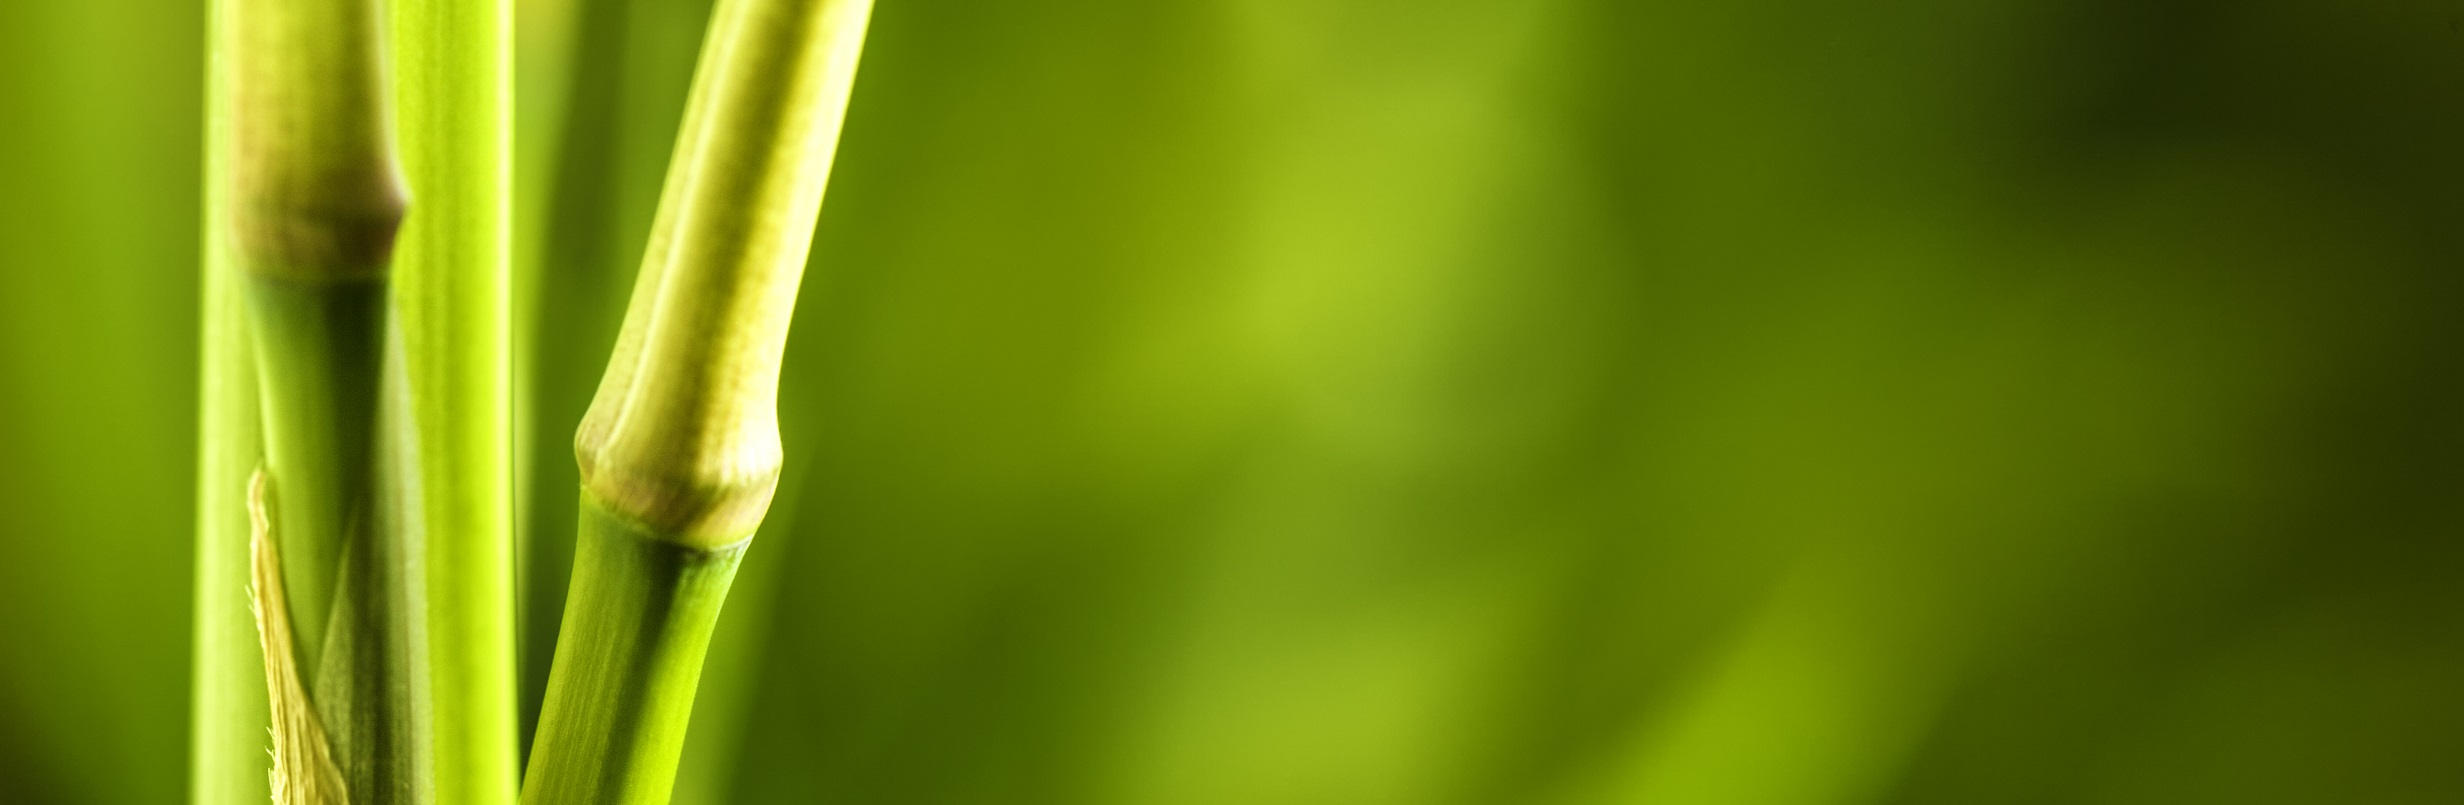 Bamboo leaves on natural background